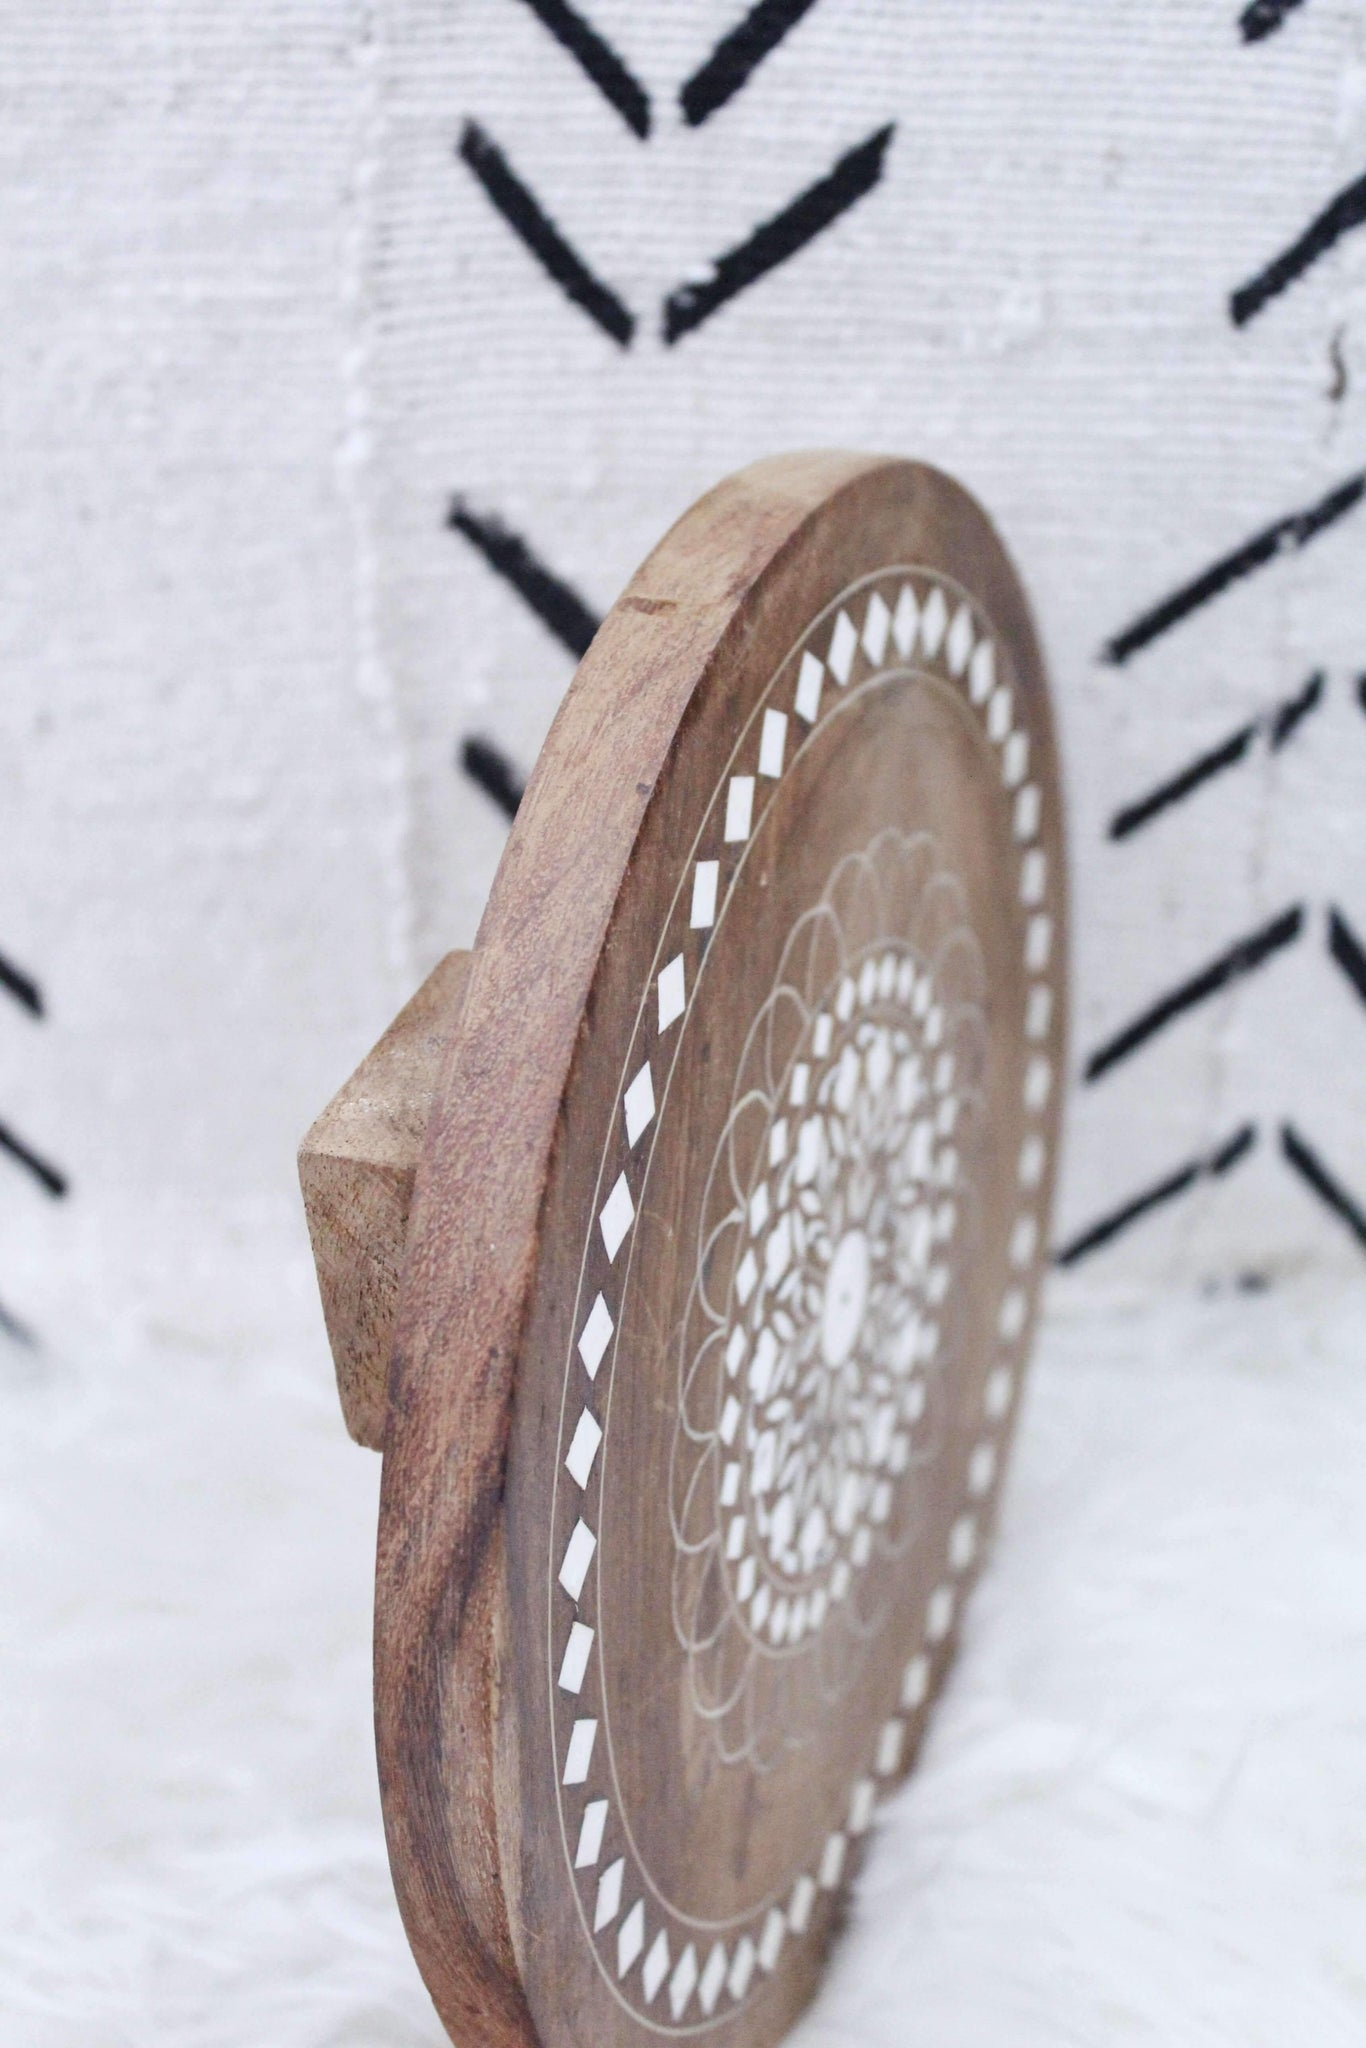 Wooden Decorative Disk, Home Decor, Room Decor, Home Accessories - elizabeth o. vintage